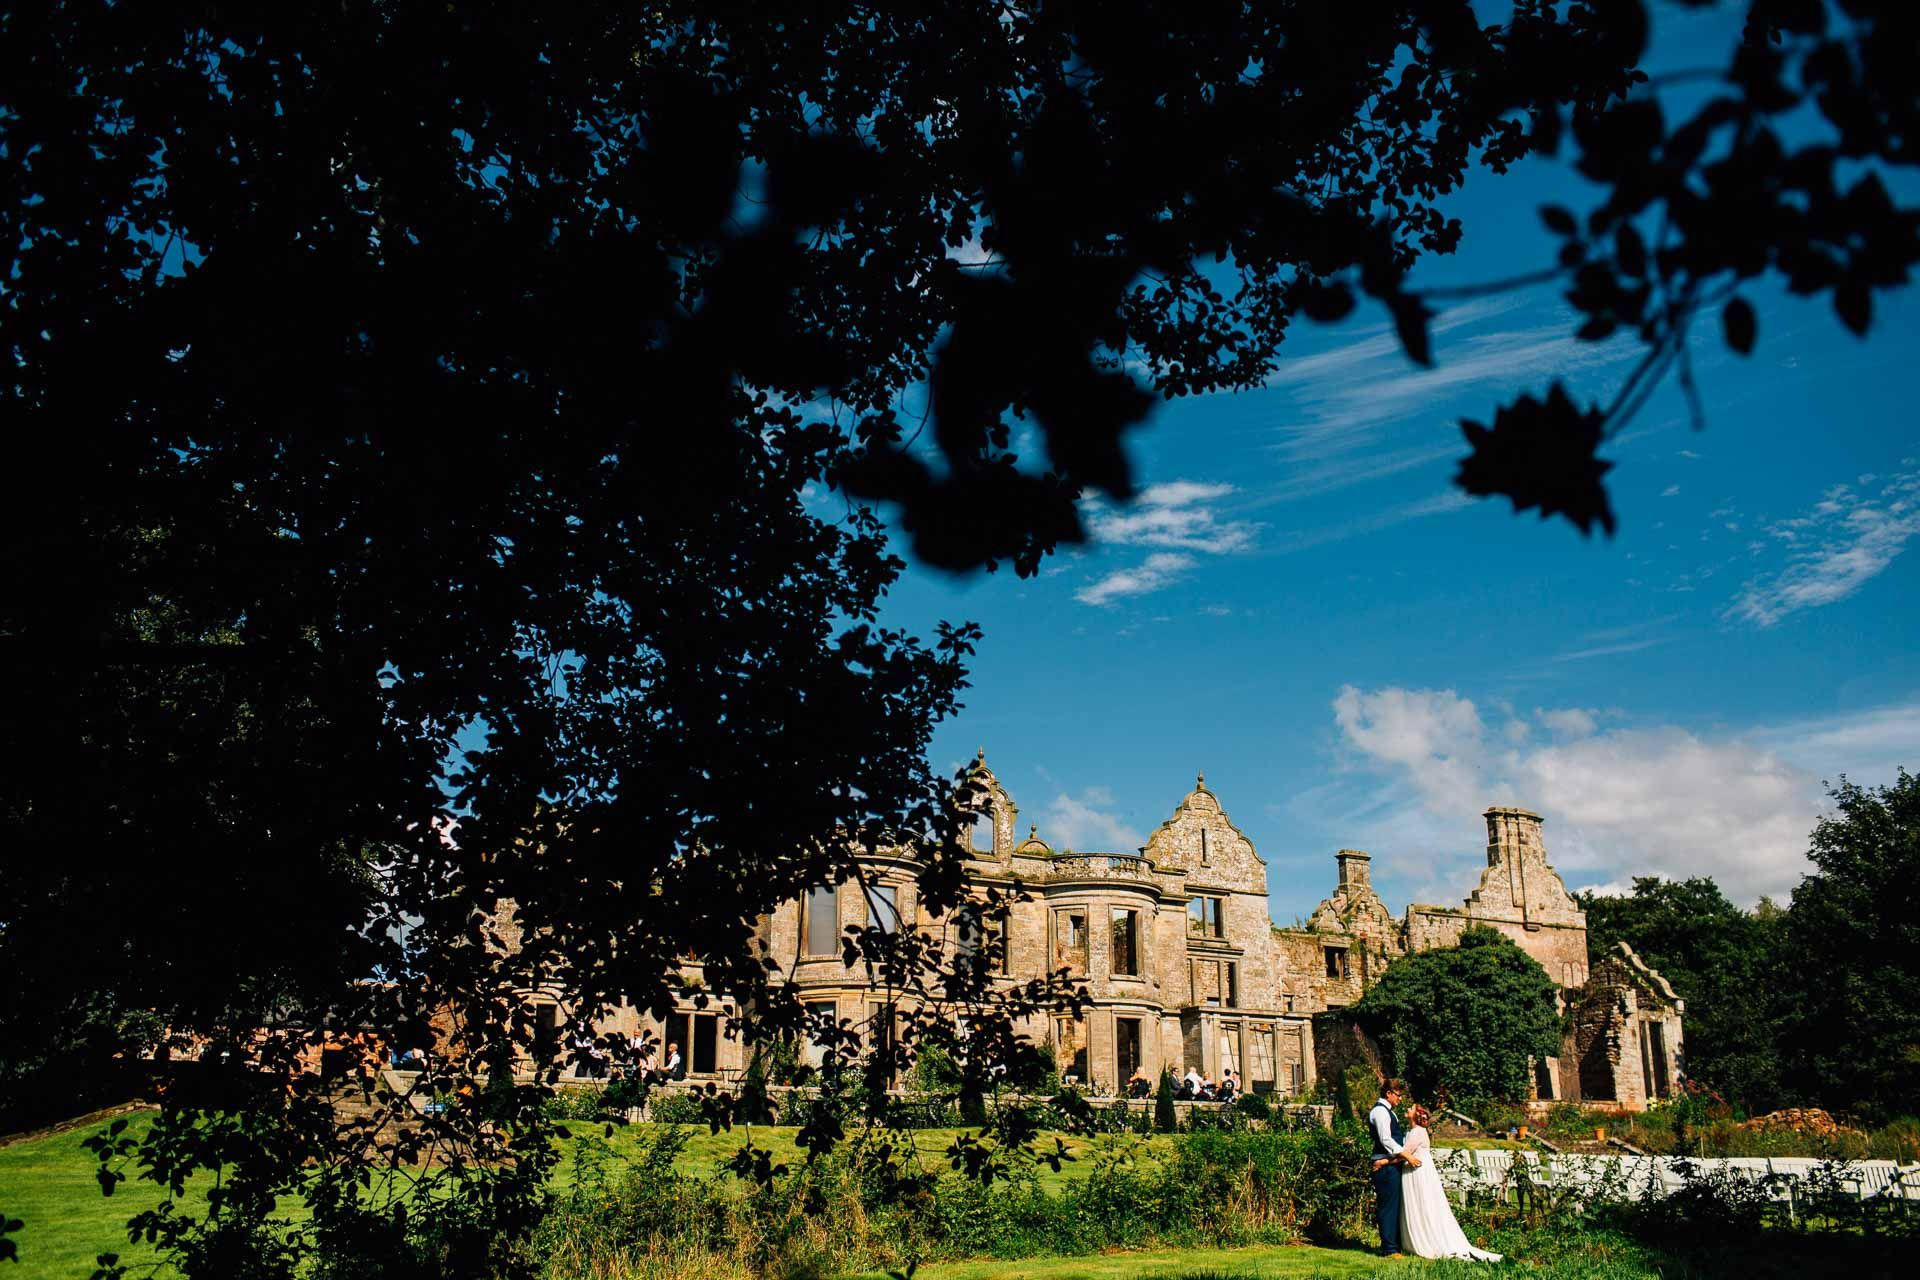 Bria Wedding Venue Kirklinton Hall Ruins Of Manor House In The Lake District Quirky And Unusual Outdoor Location England